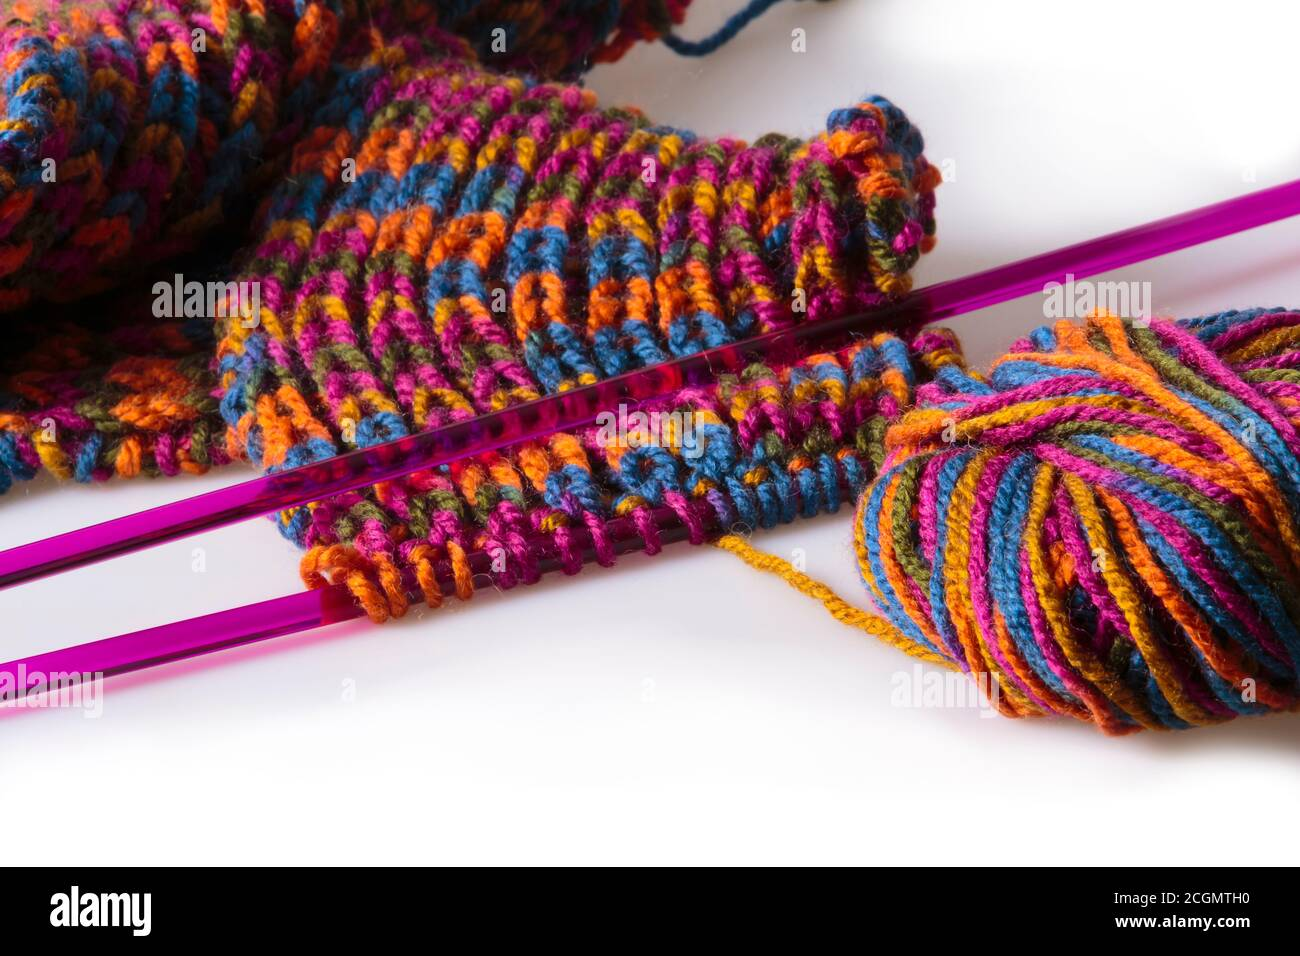 Handmade Woolen Scarf High Resolution Stock Photography And Images Alamy